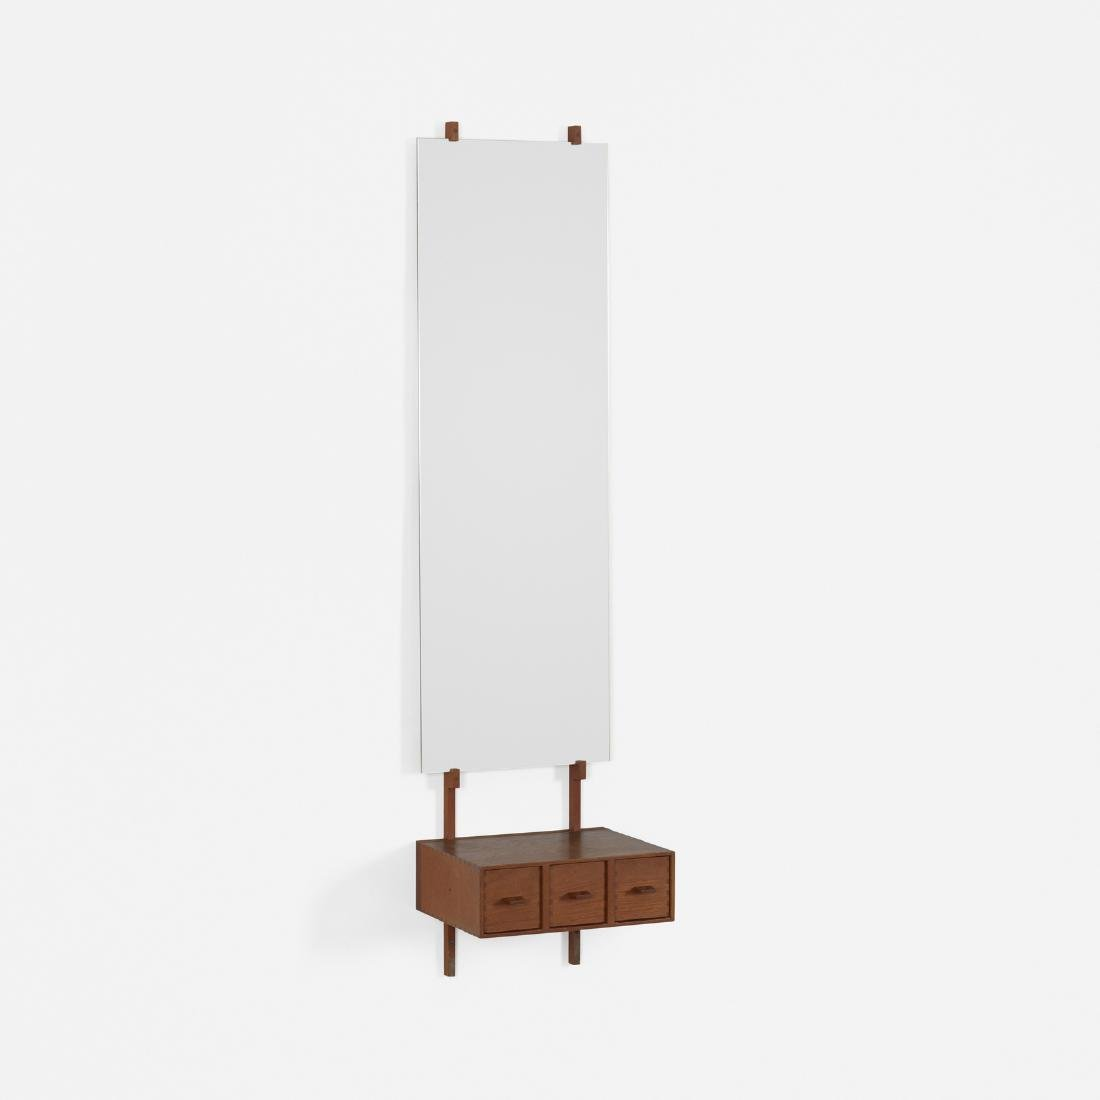 Uno and Osten Kristiansson, wall-mounted vanity